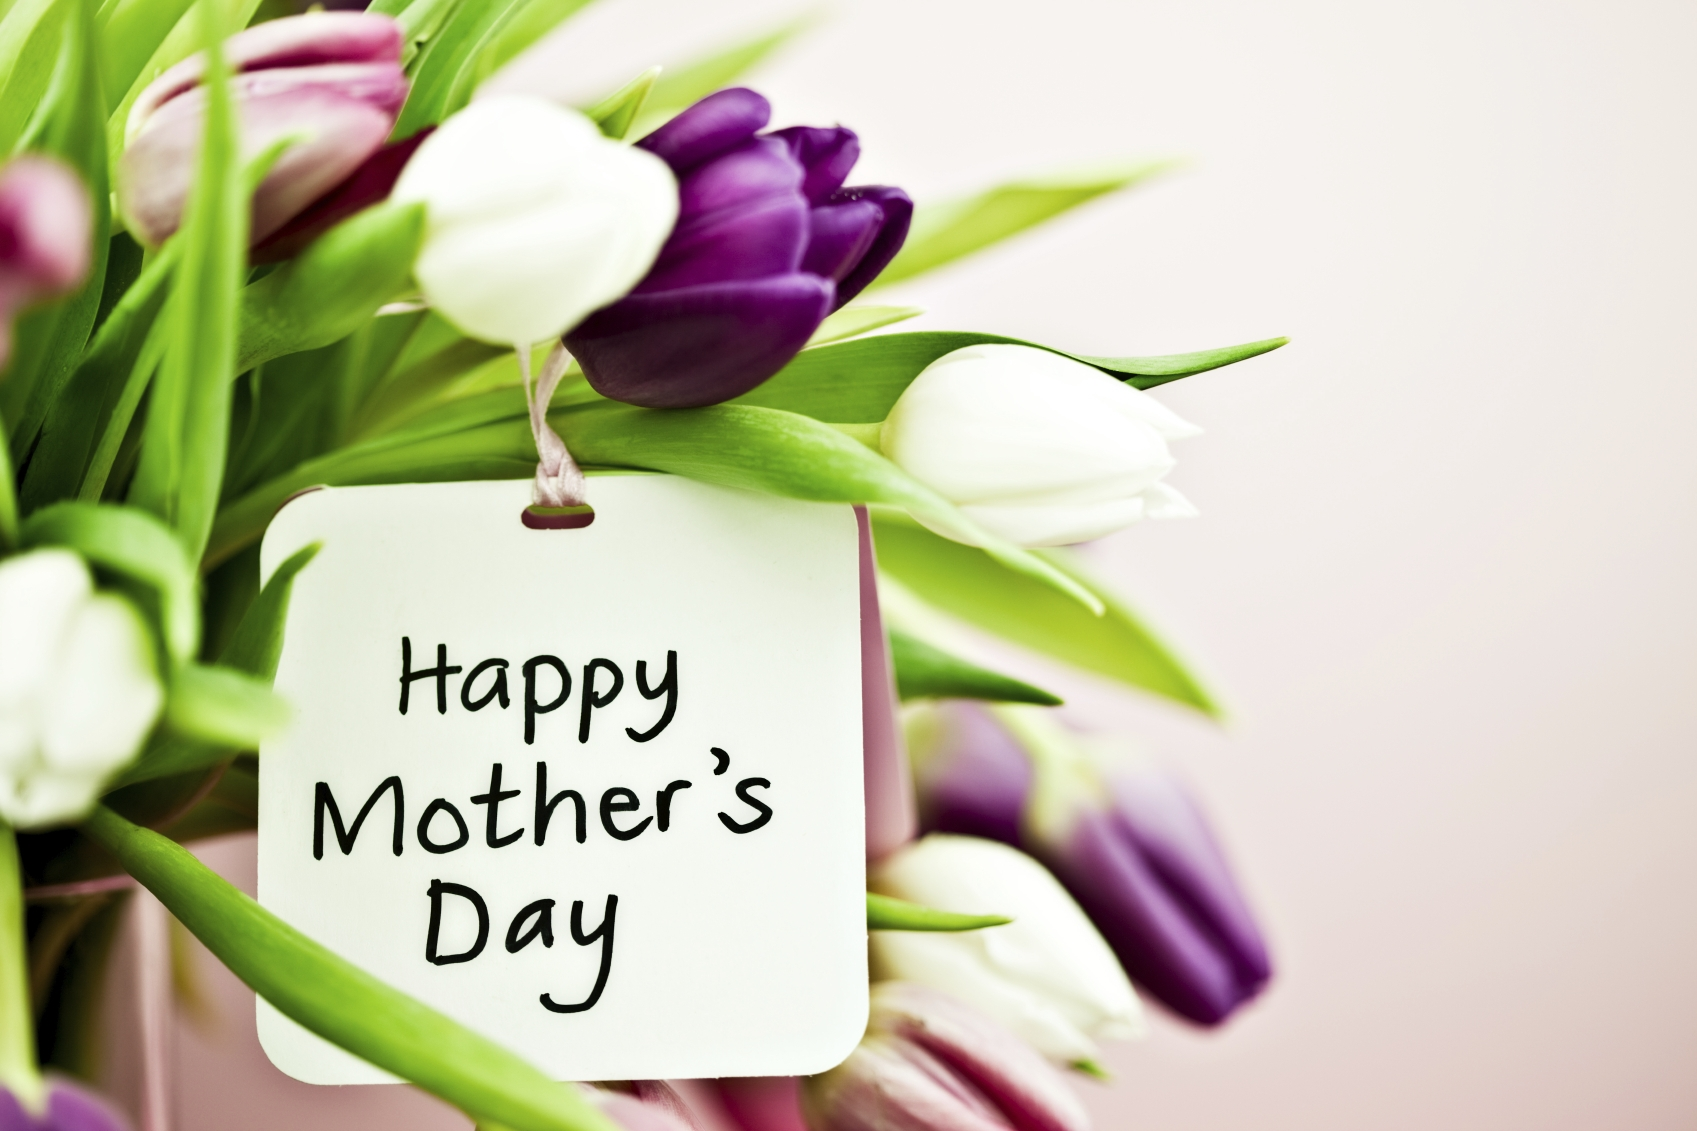 happy mother day images wallpapers pics greetings fb whatsapp dp, Natural flower